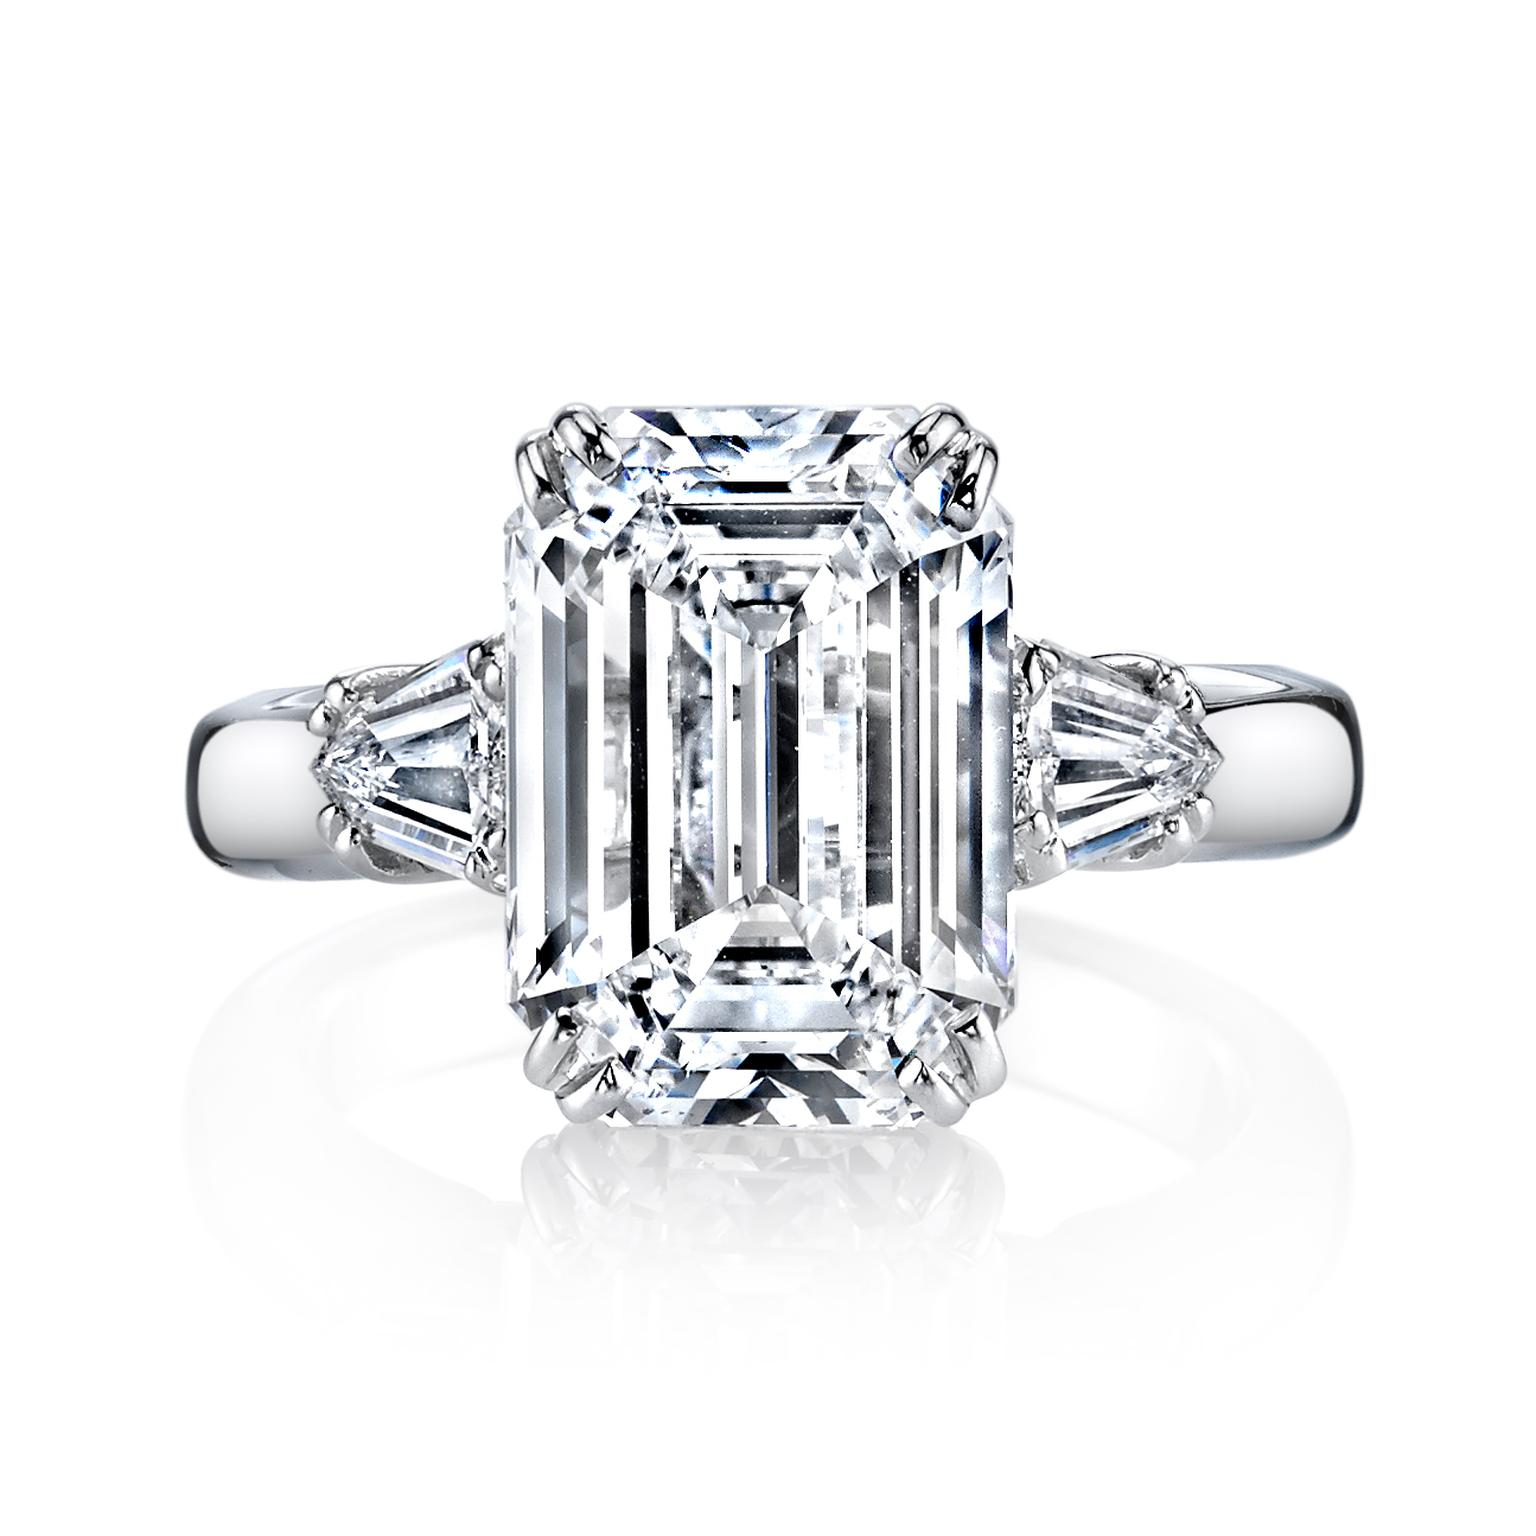 Harry Kotlar emerald-cut engagement ring